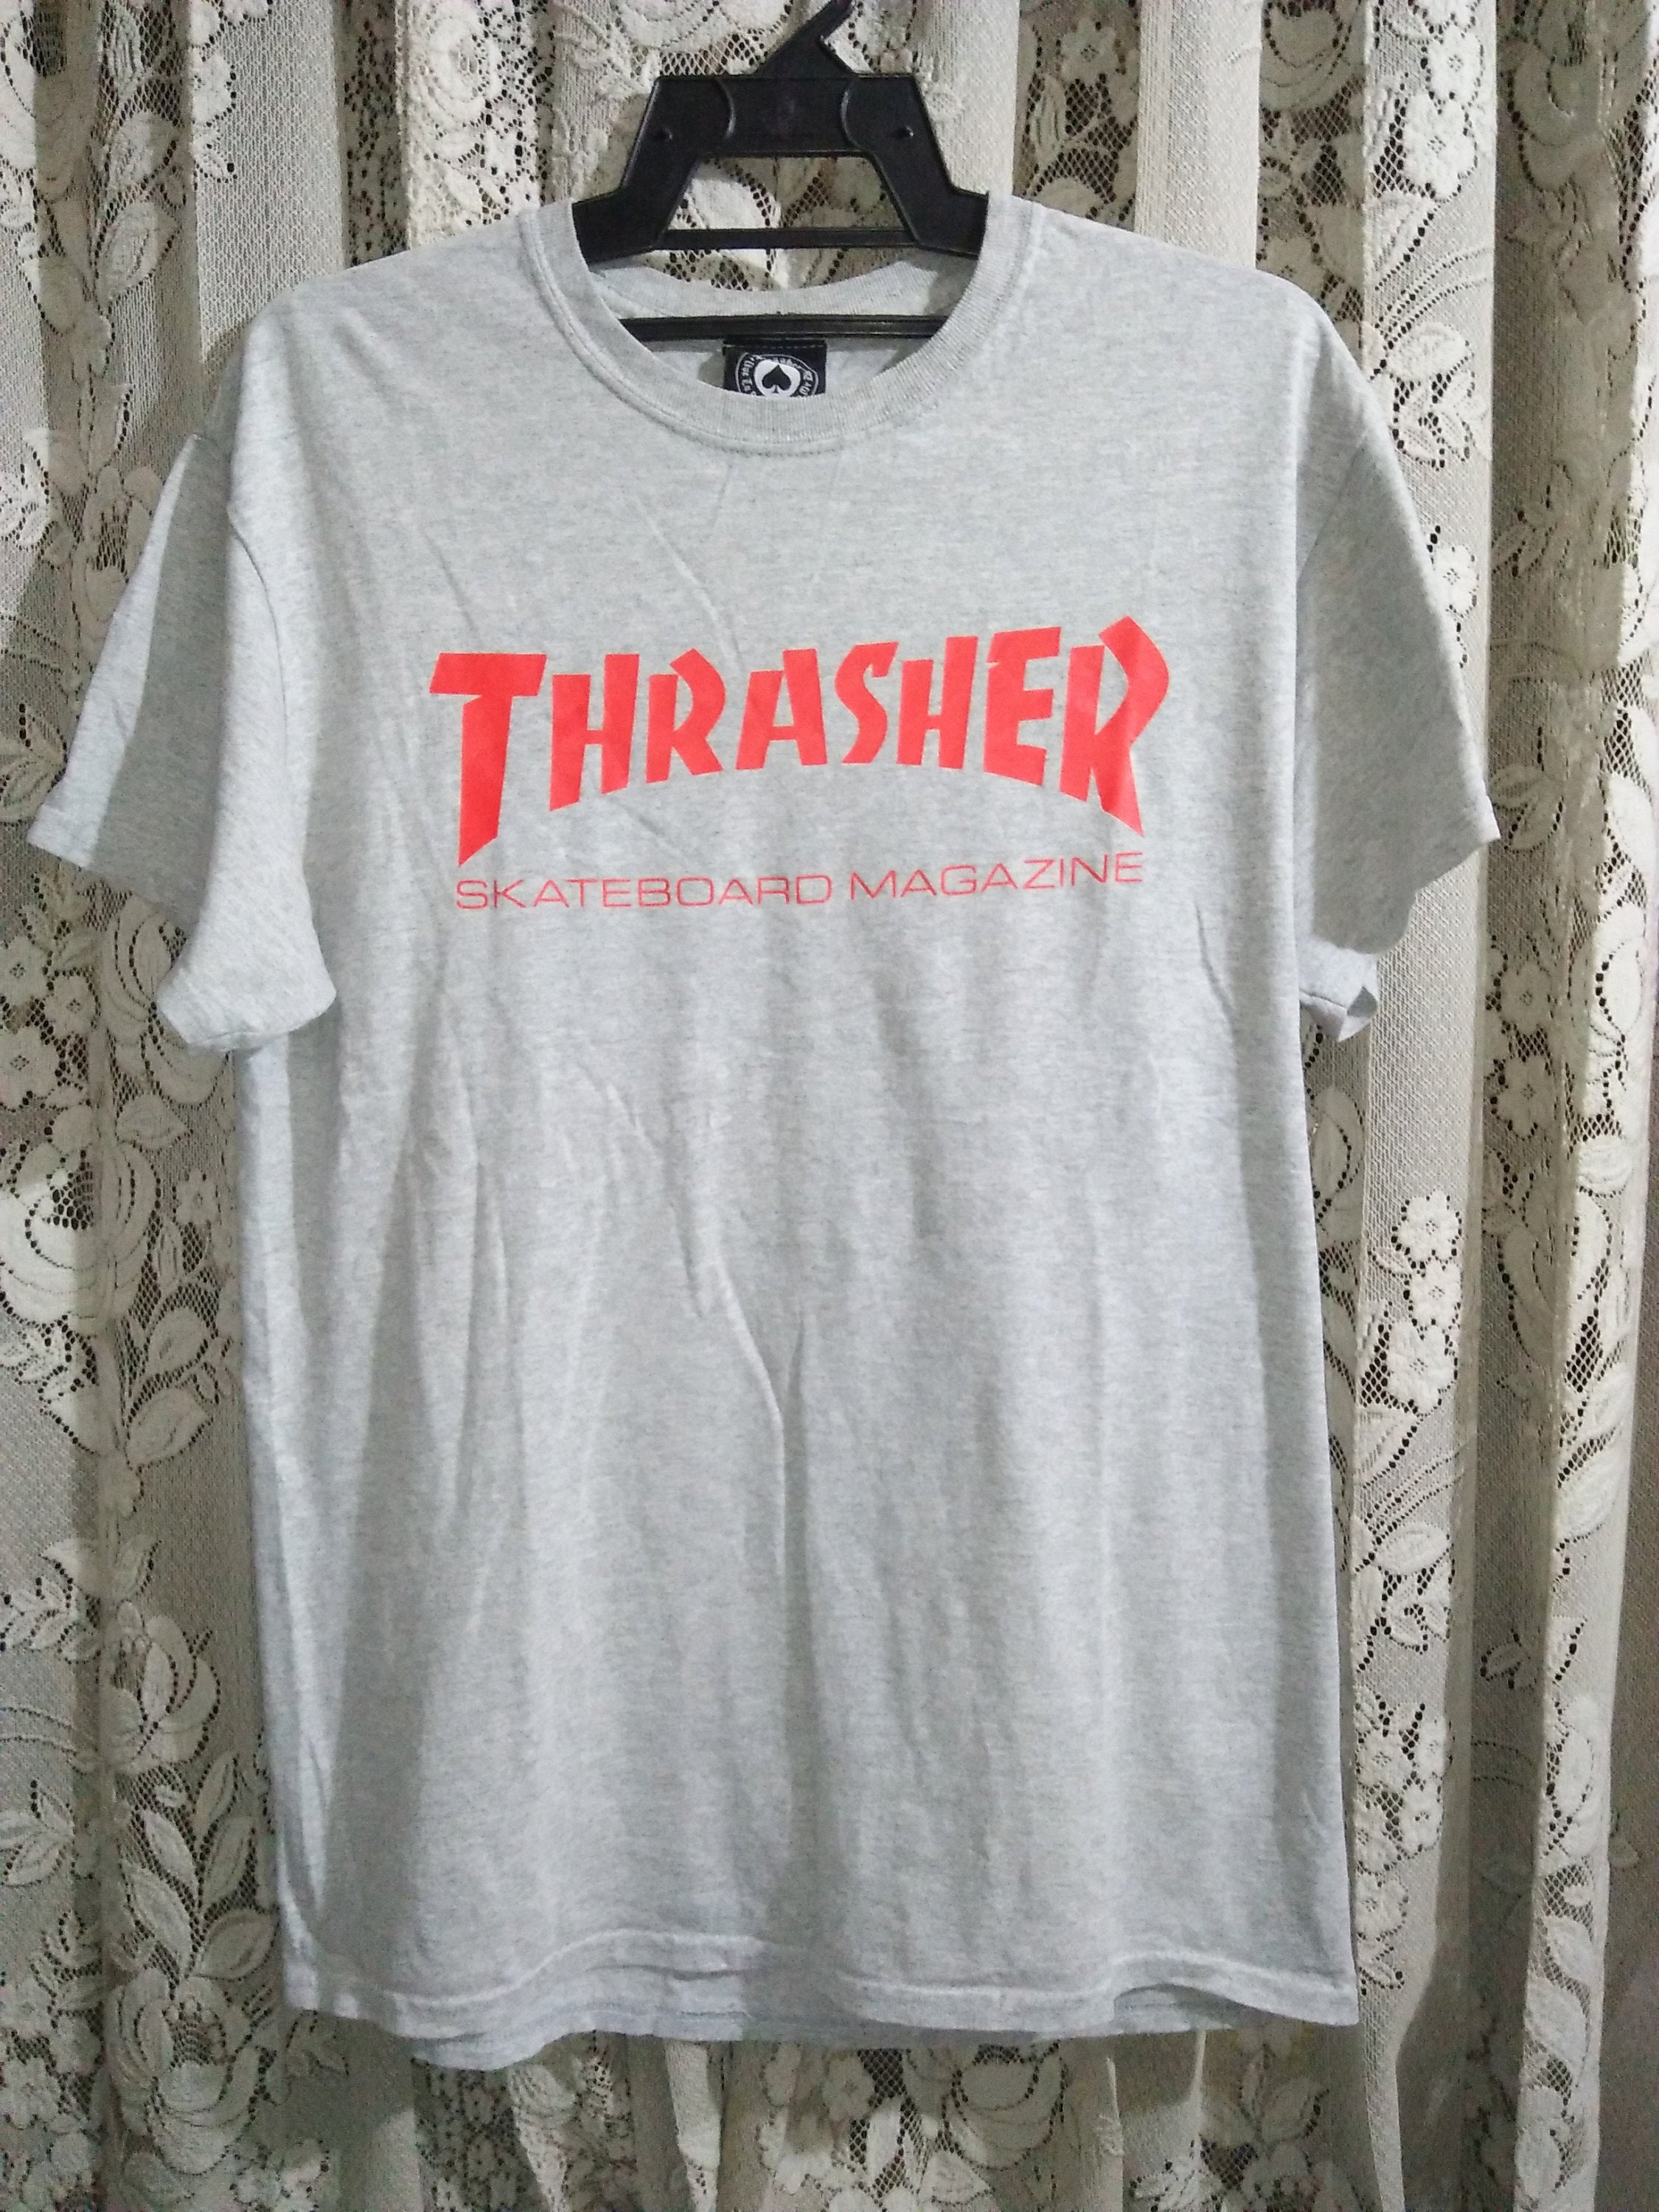 Vintage 1990s Thrasher Magazine Skateboard Red Logo T-shirt Original